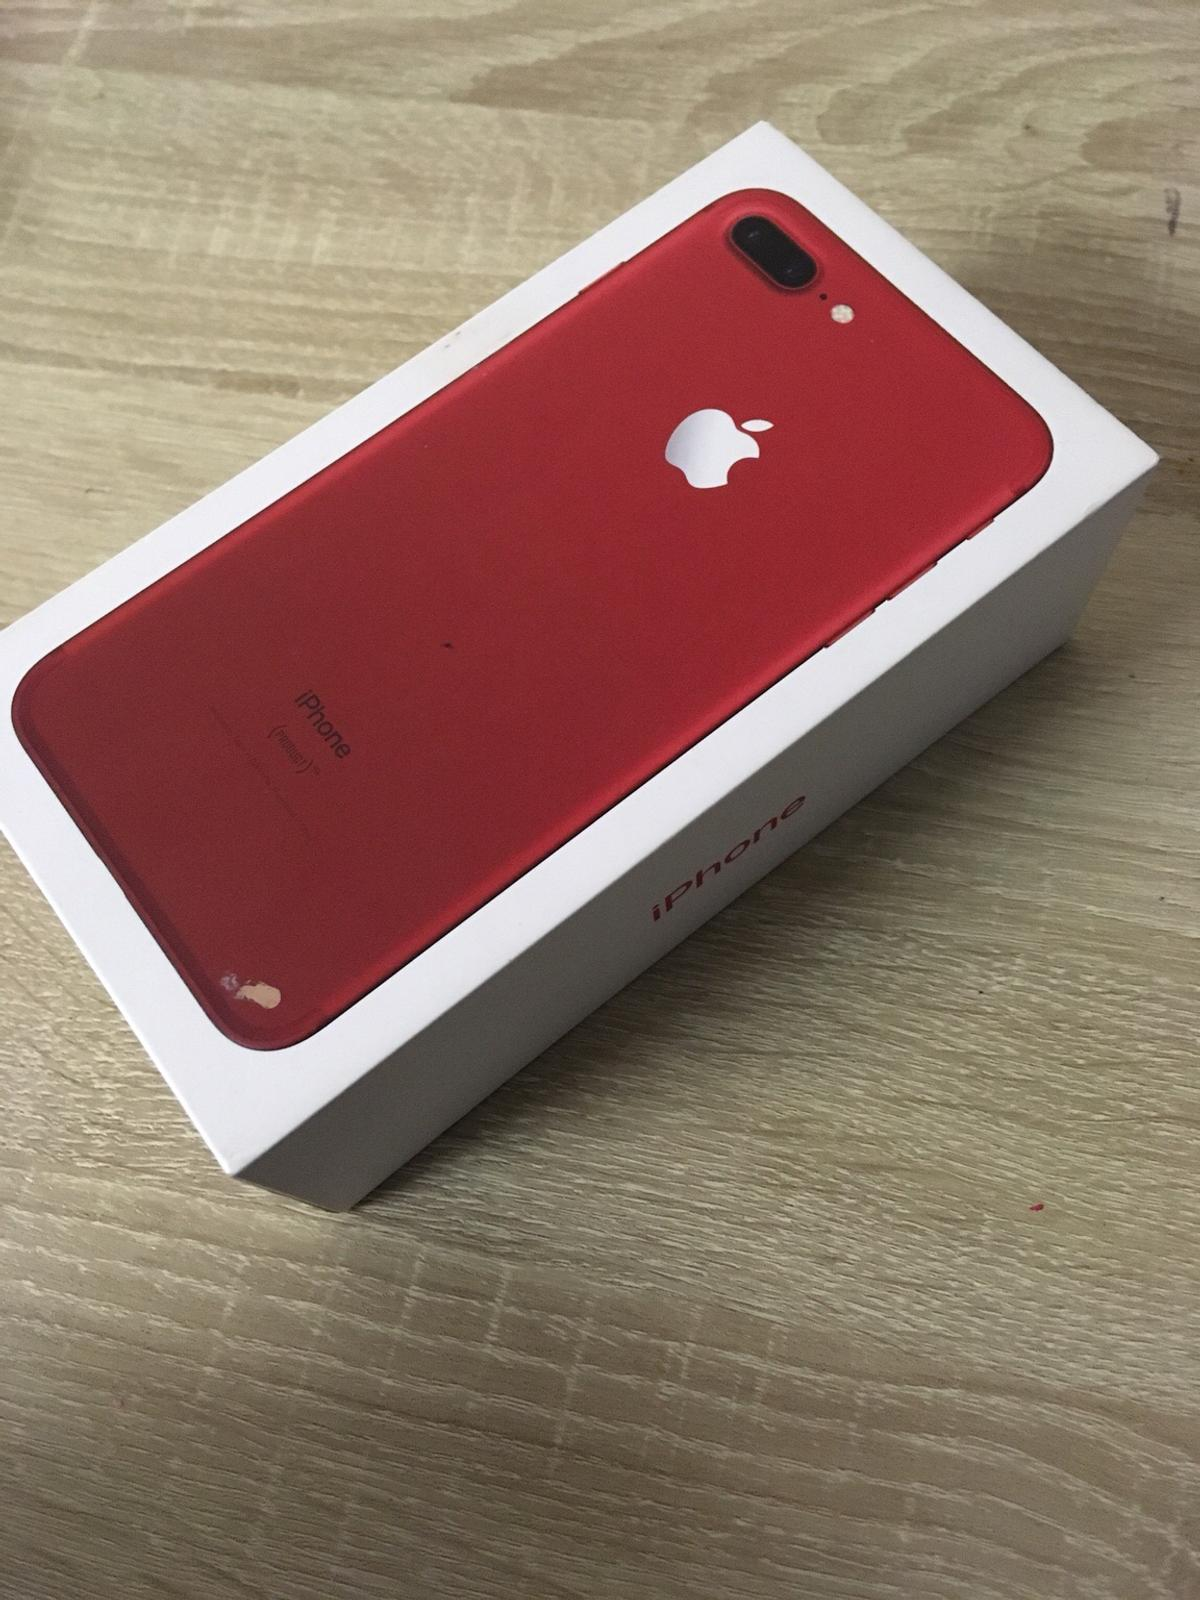 iPhone 7 Plus Red in LU4 Luton for £400 00 for sale - Shpock